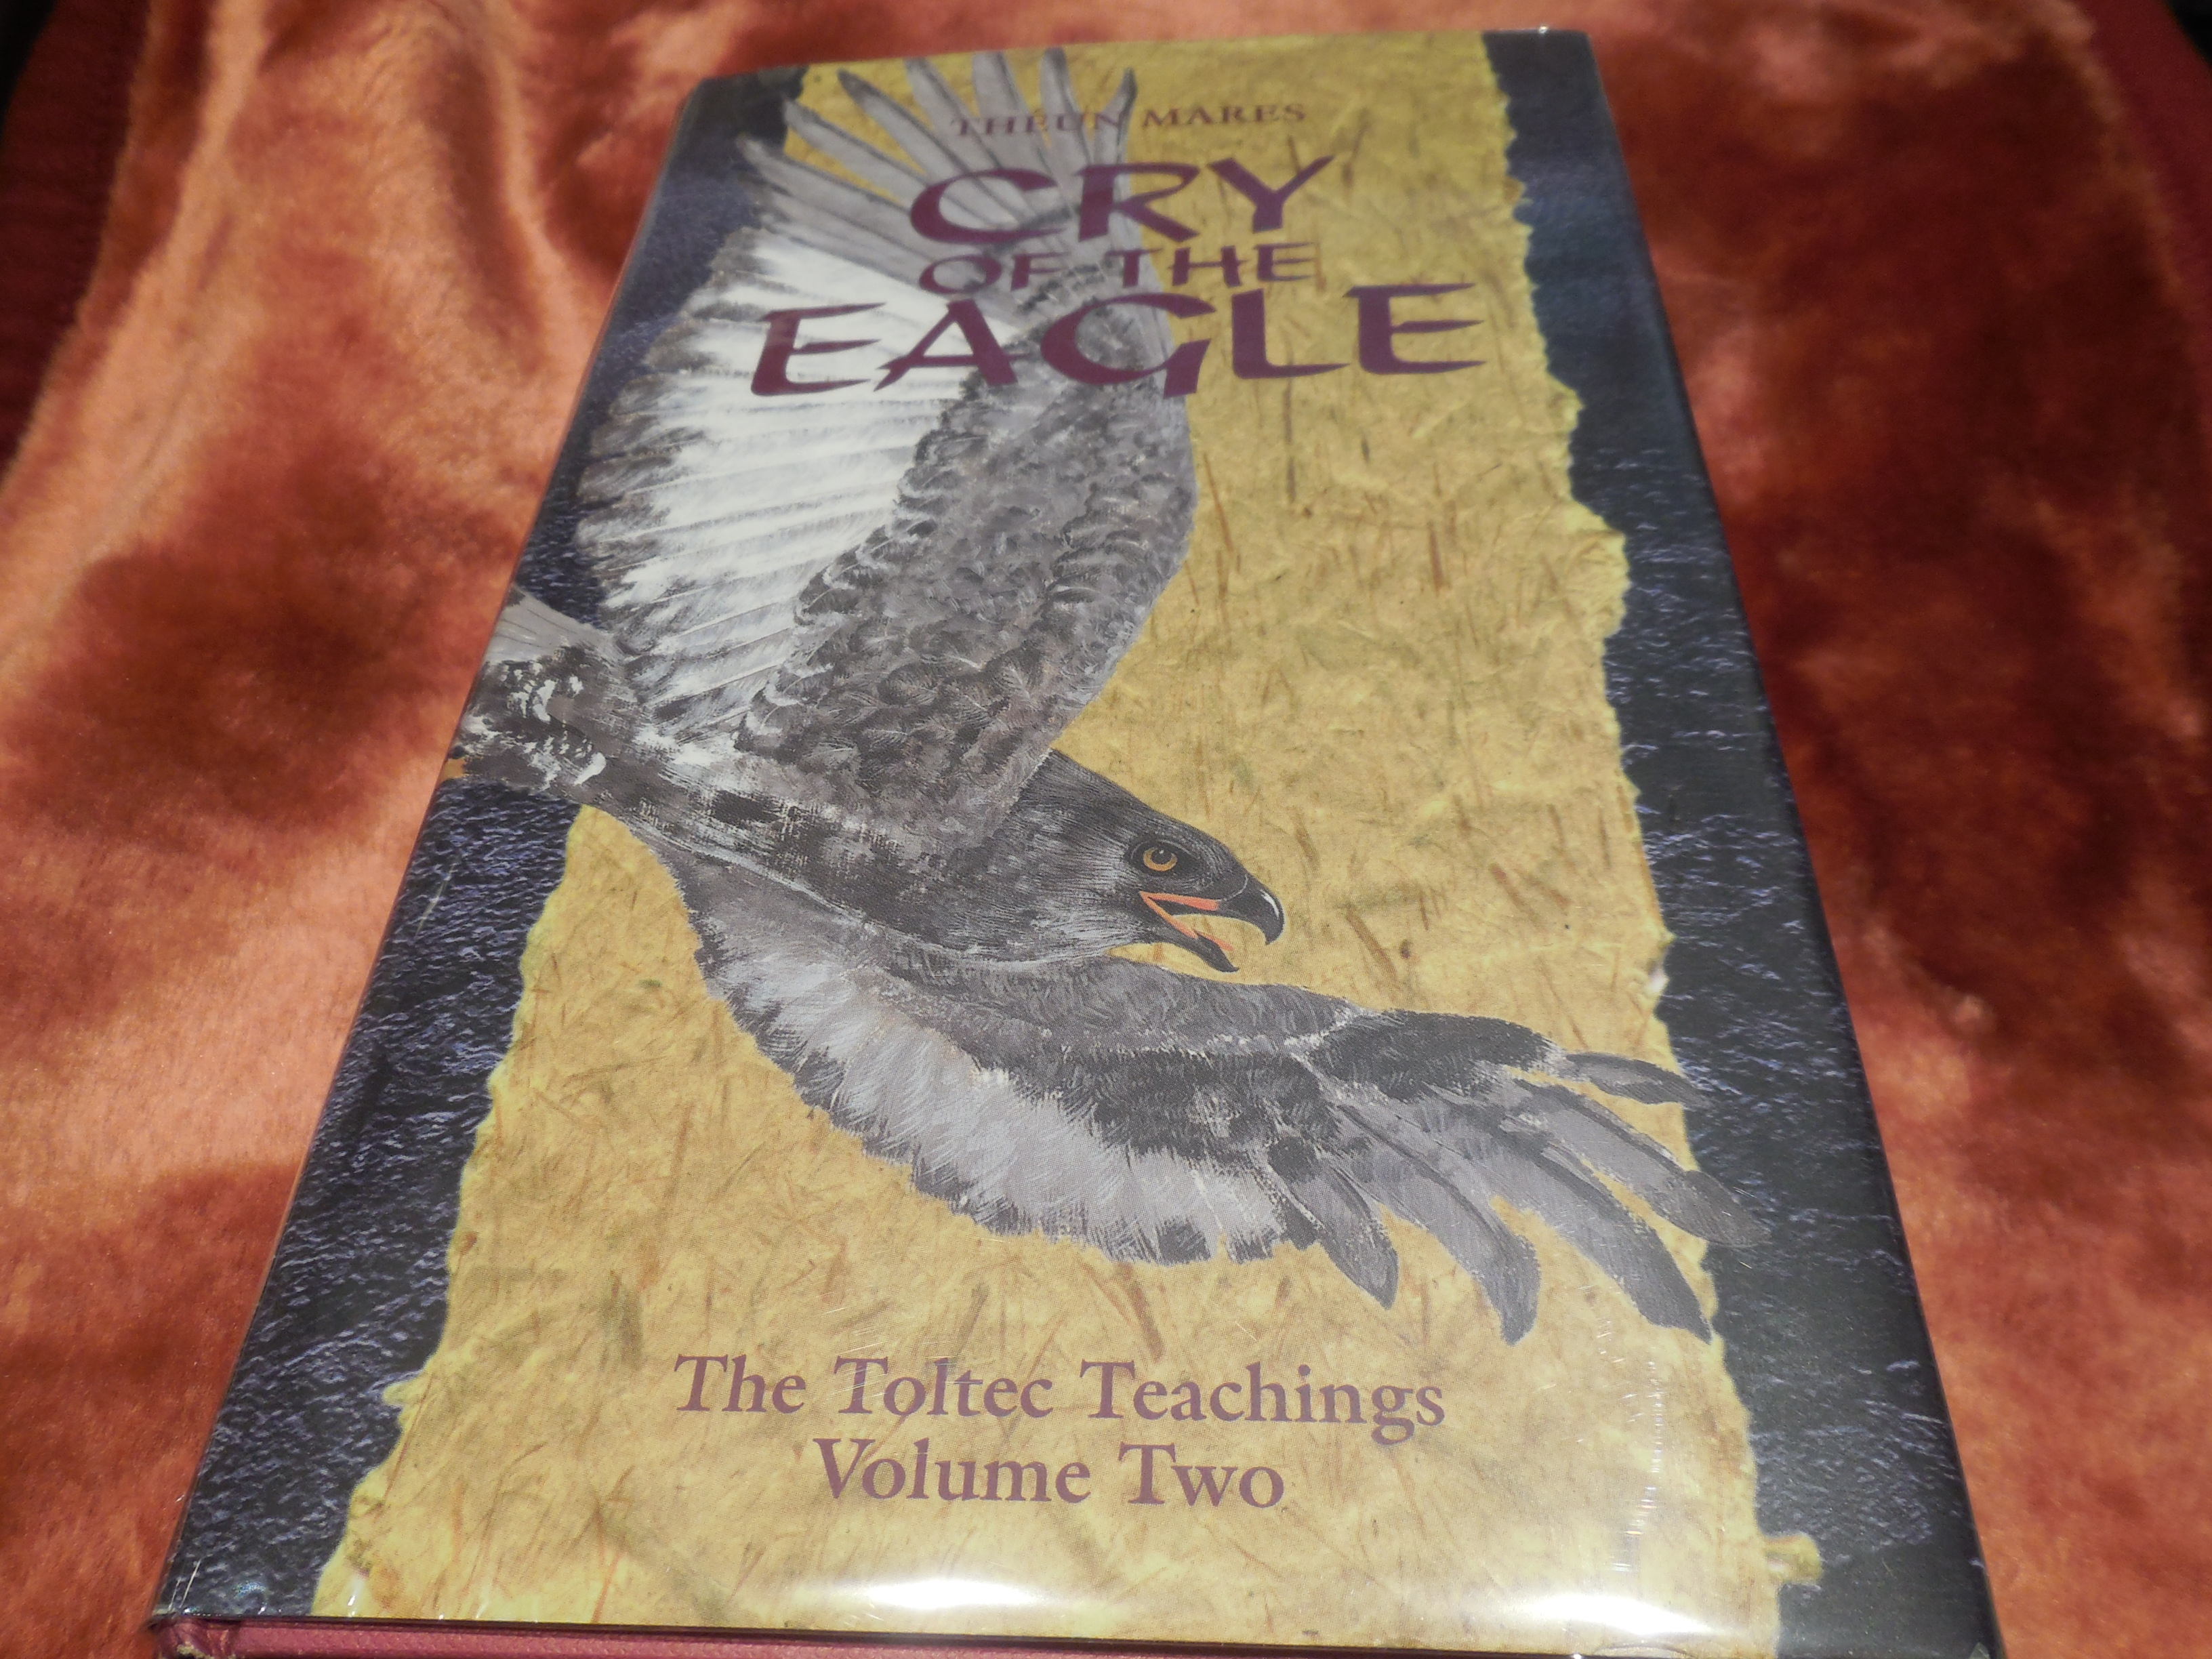 Image for Cry of the Eagle - The  Toltec Teachings, Volume Two